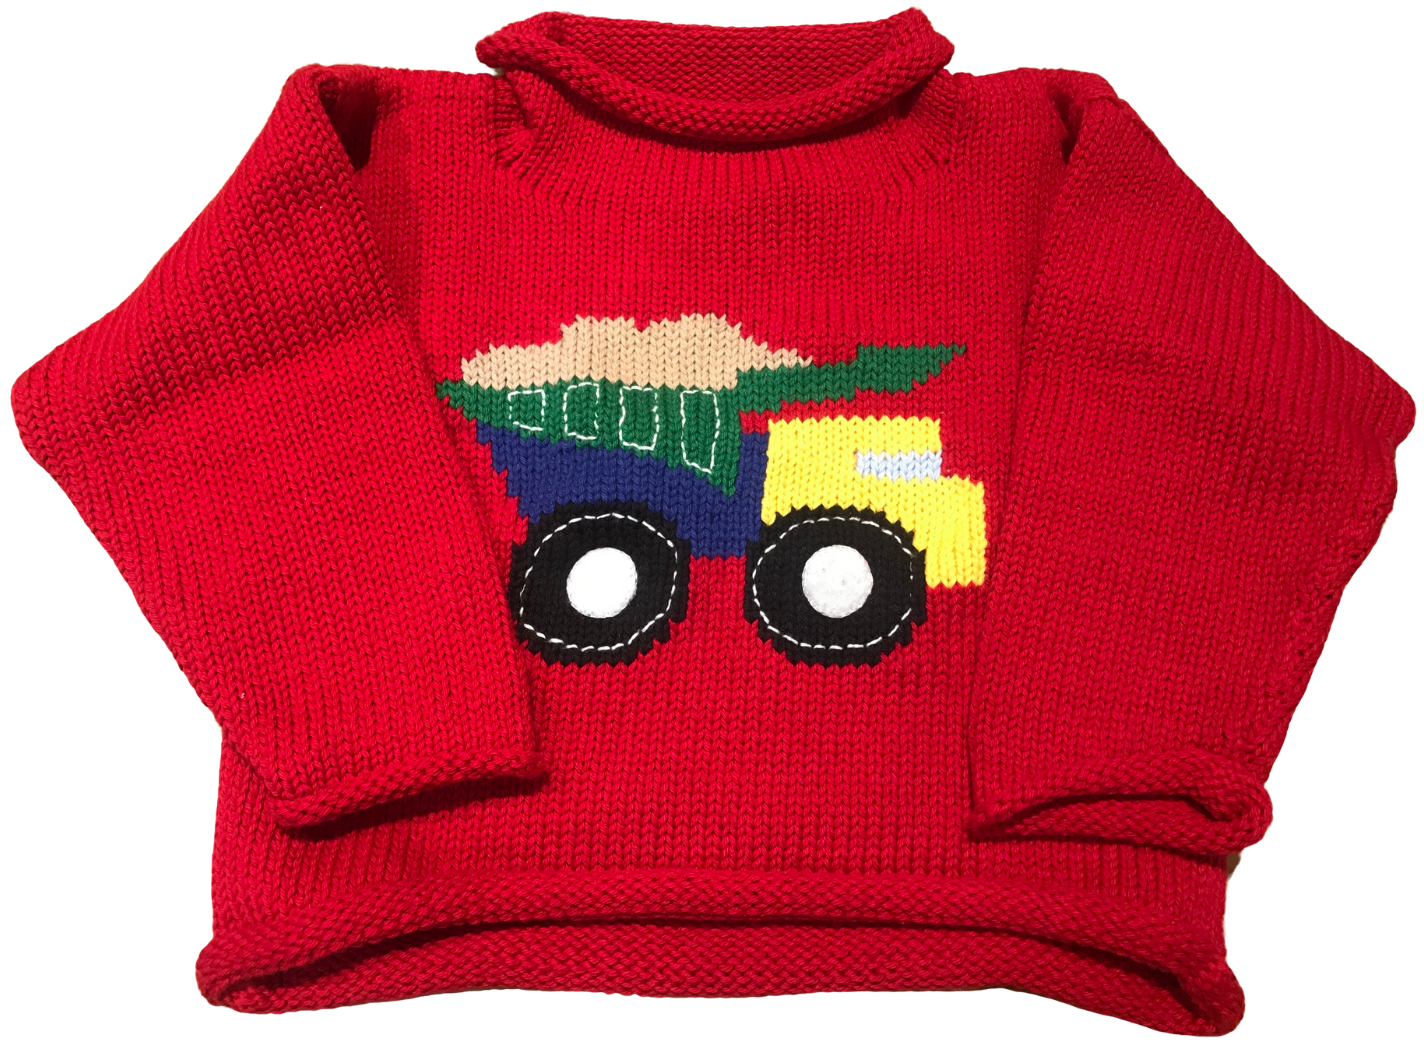 Red Dump Truck Roll Neck Sweater